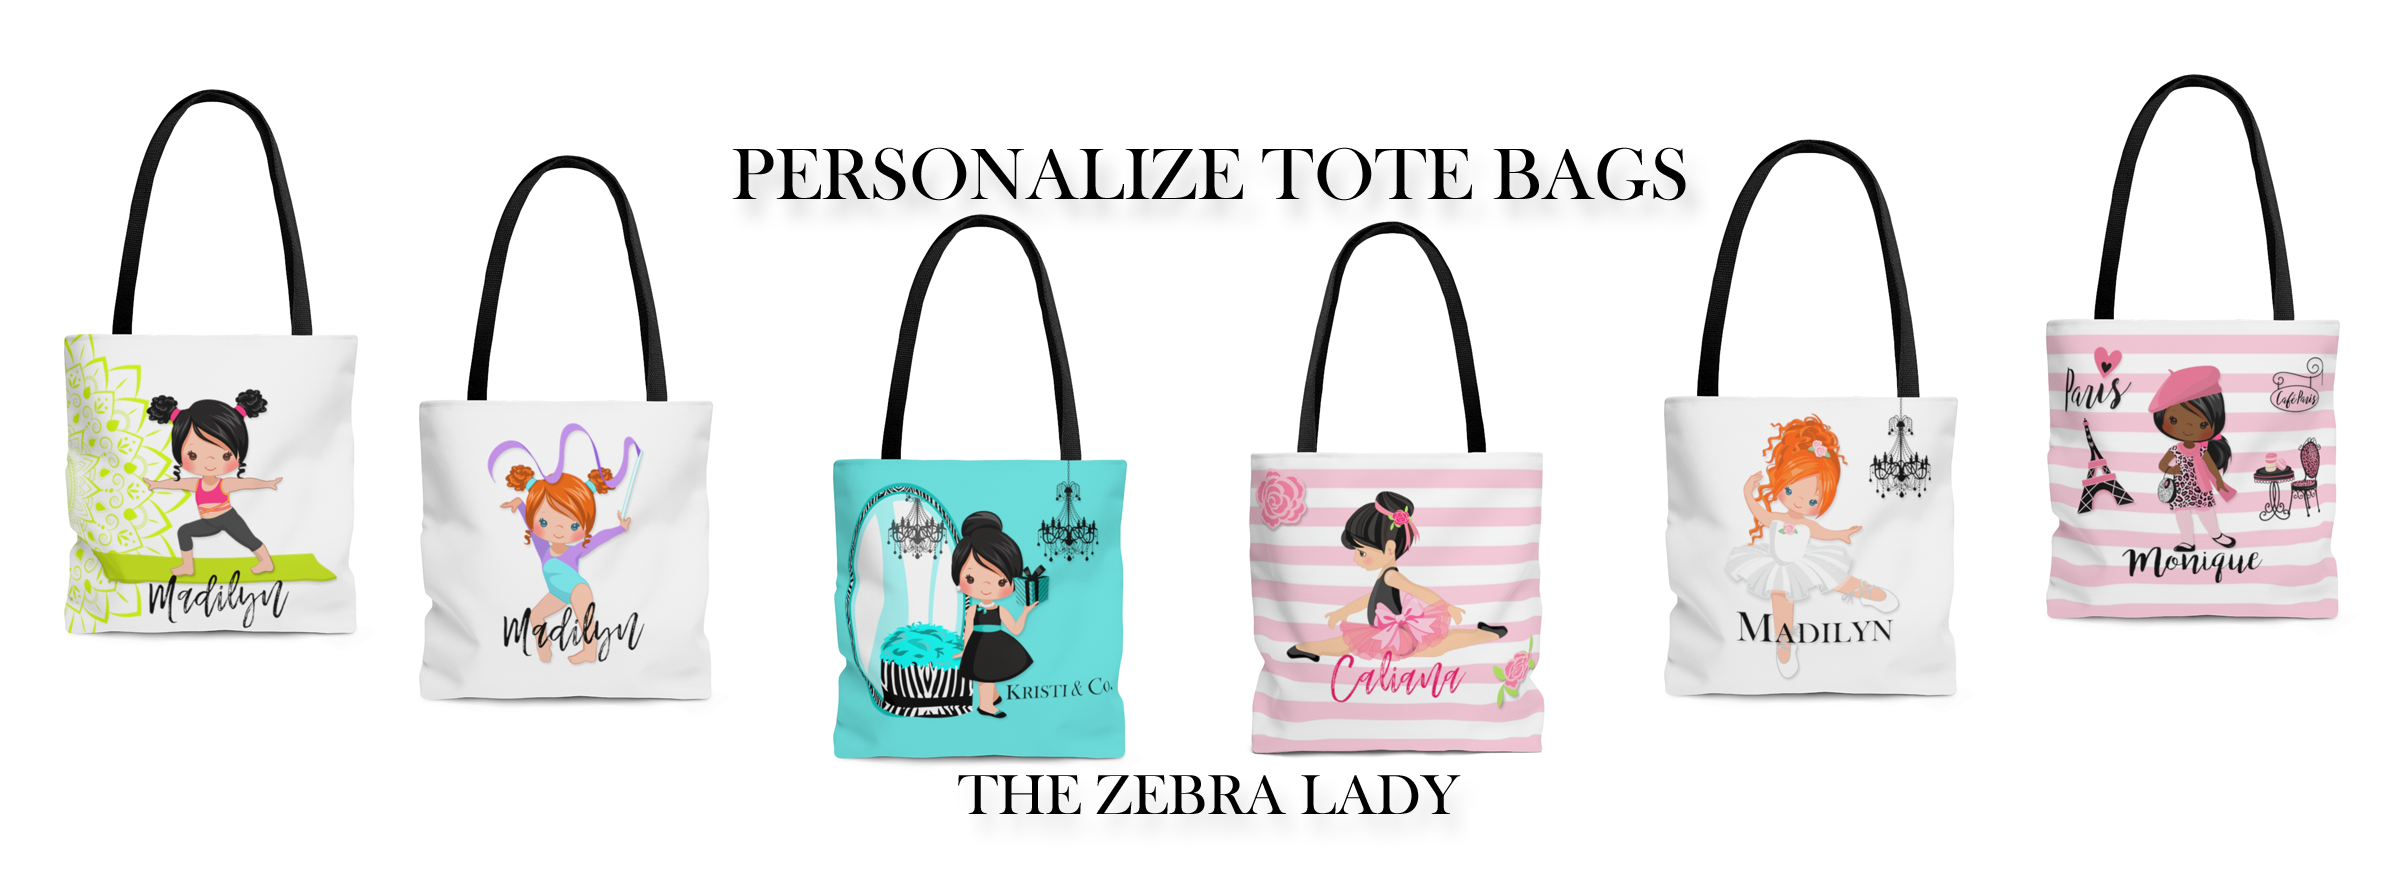 PERSONALIZE TOTE BAGS BANNER SQUARESPACE.png